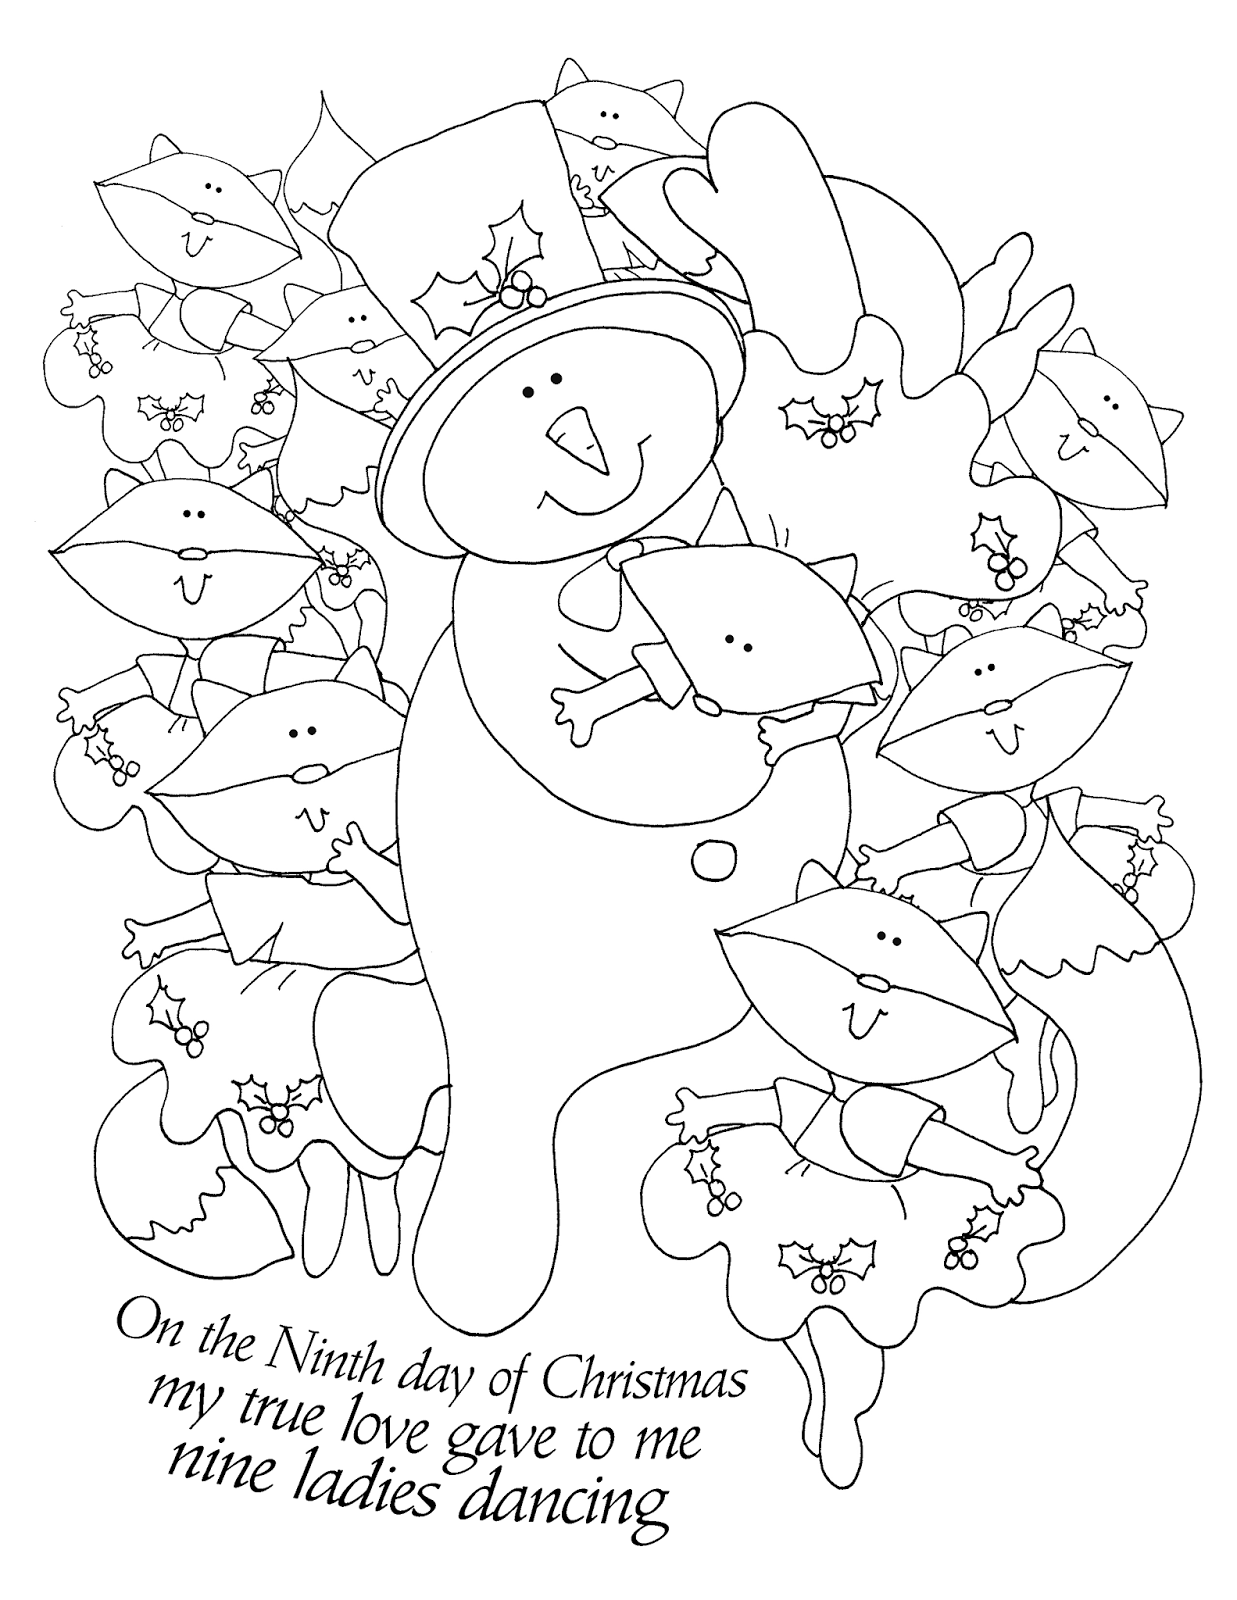 Free Dearie Dolls Digi Stamps: The Ninth Day of Christmas